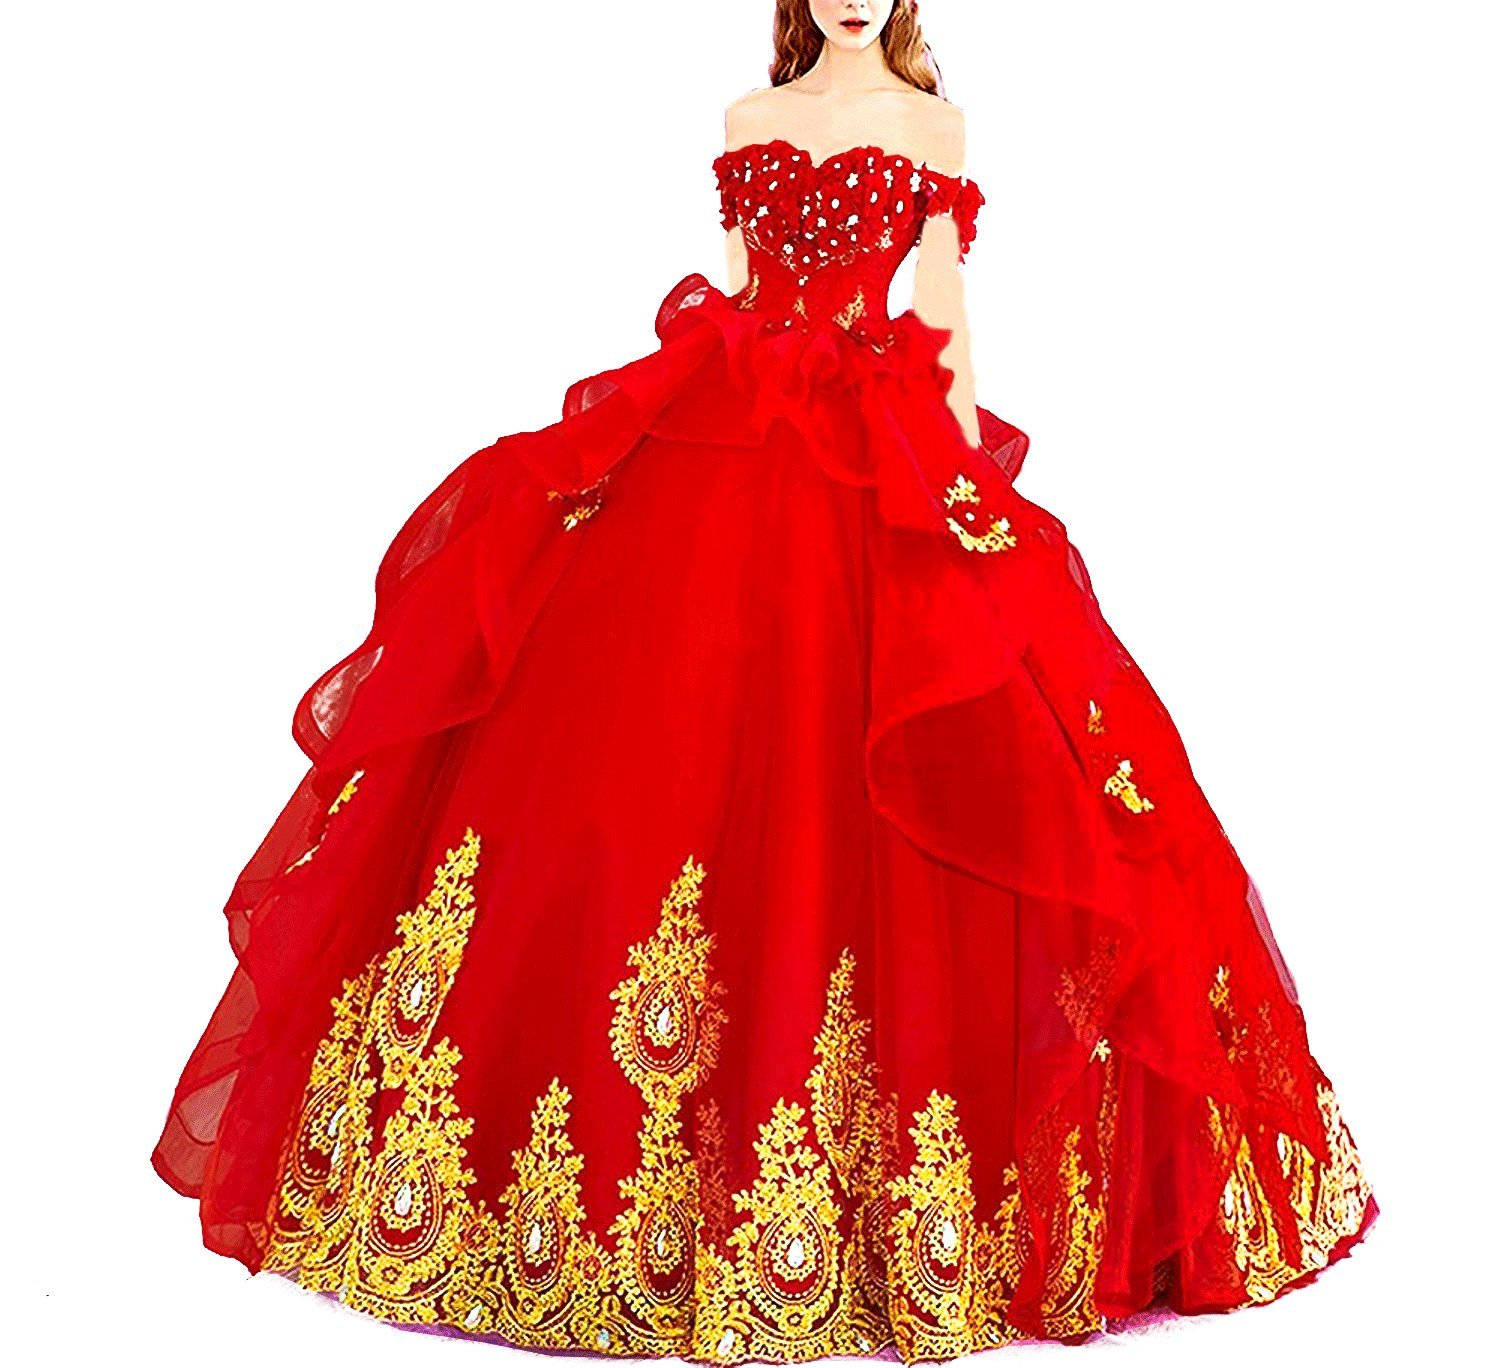 9fd0eae90518 Modeldress Off Shoulder Applique Tulle Ball Gown Beaded Princess Quinceanera  Evening Prom Dress Red US8